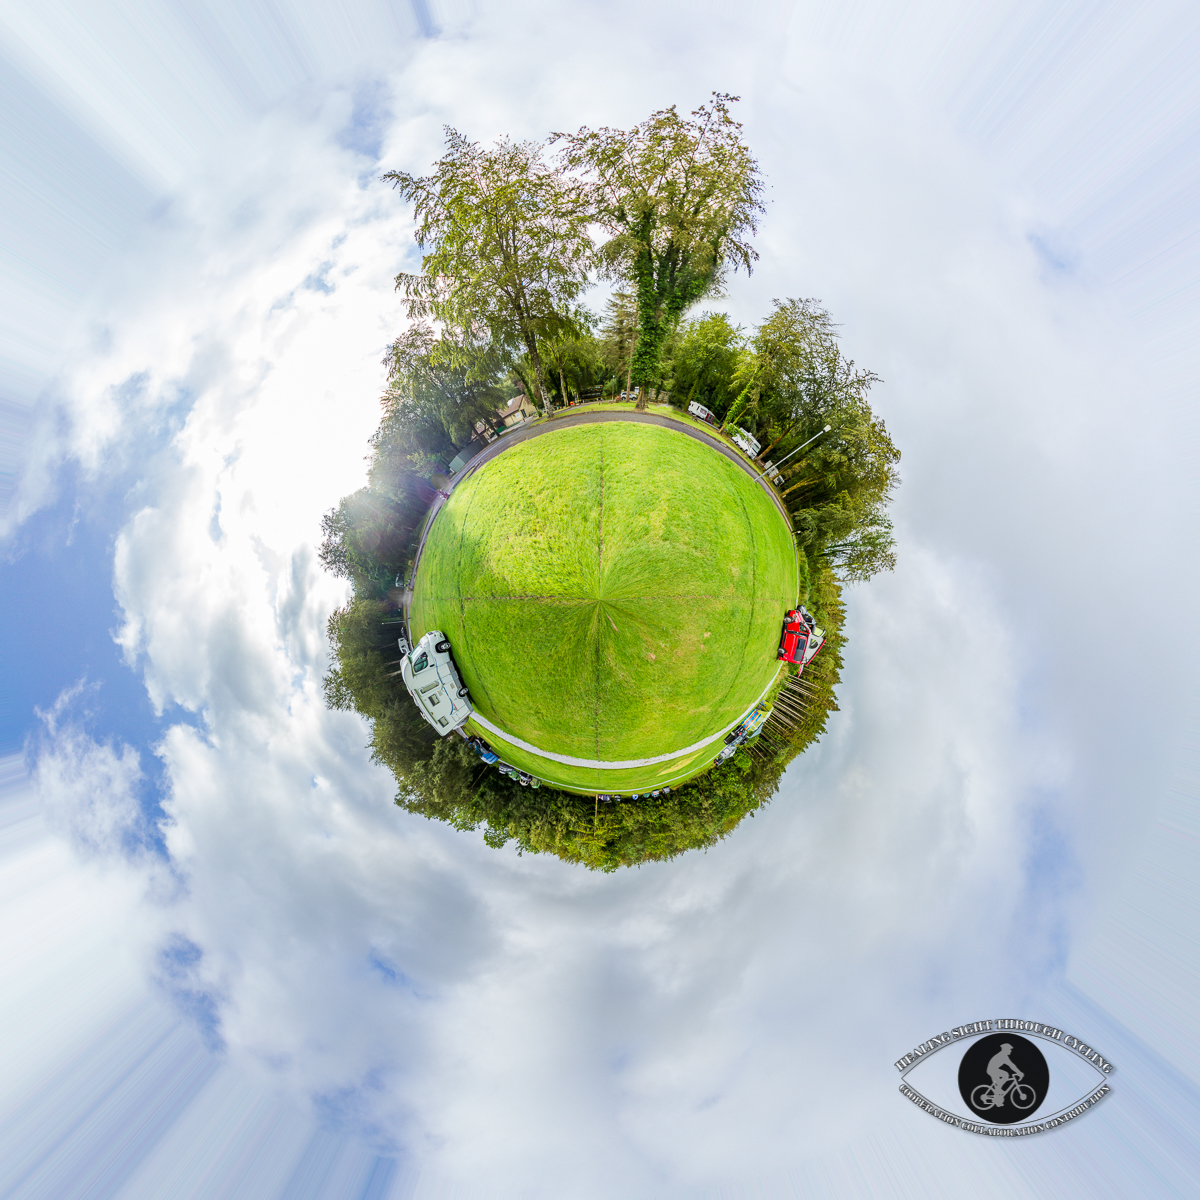 Curraghchase Forest Park Little planet